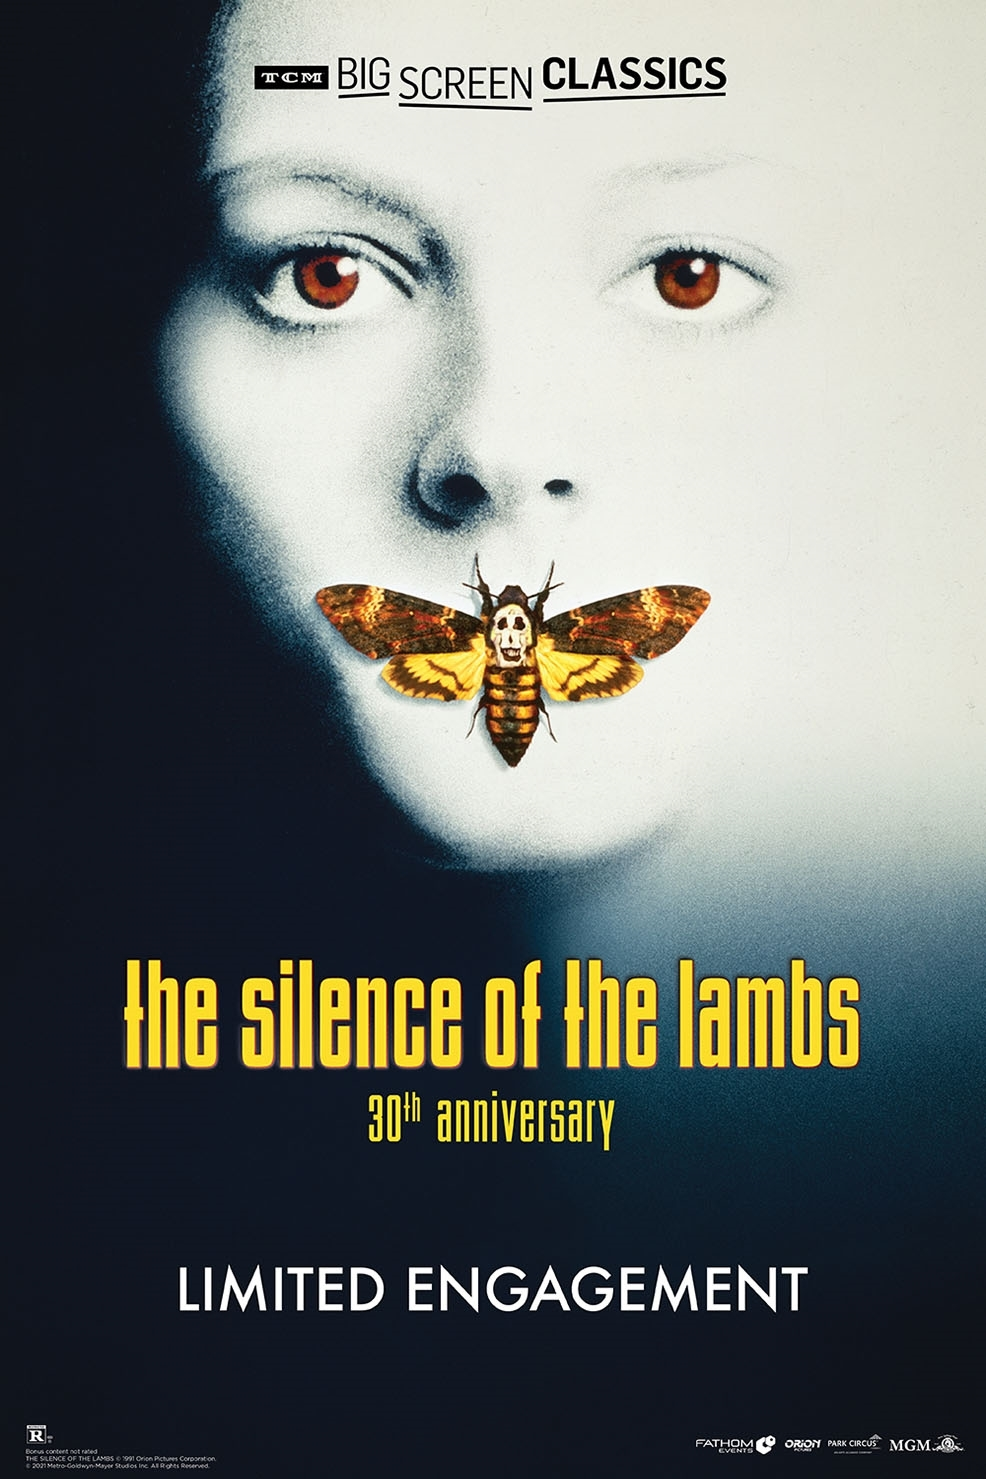 Poster of The Silence of the Lambs 30th Anniversary presented by TCM